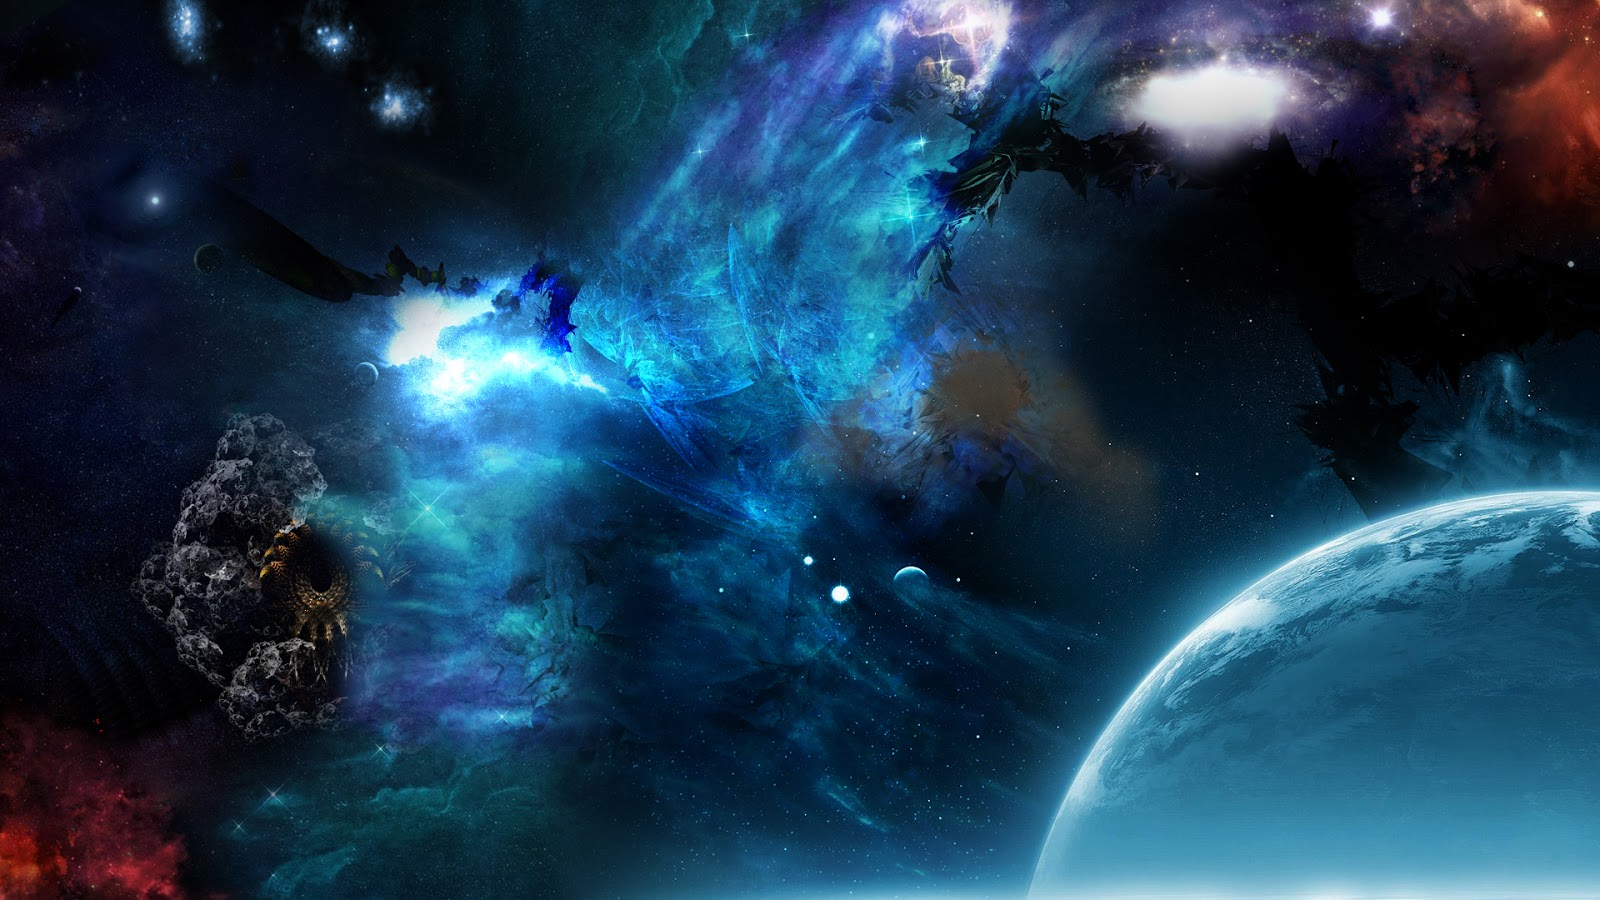 Blue Outer Space Wallpaper